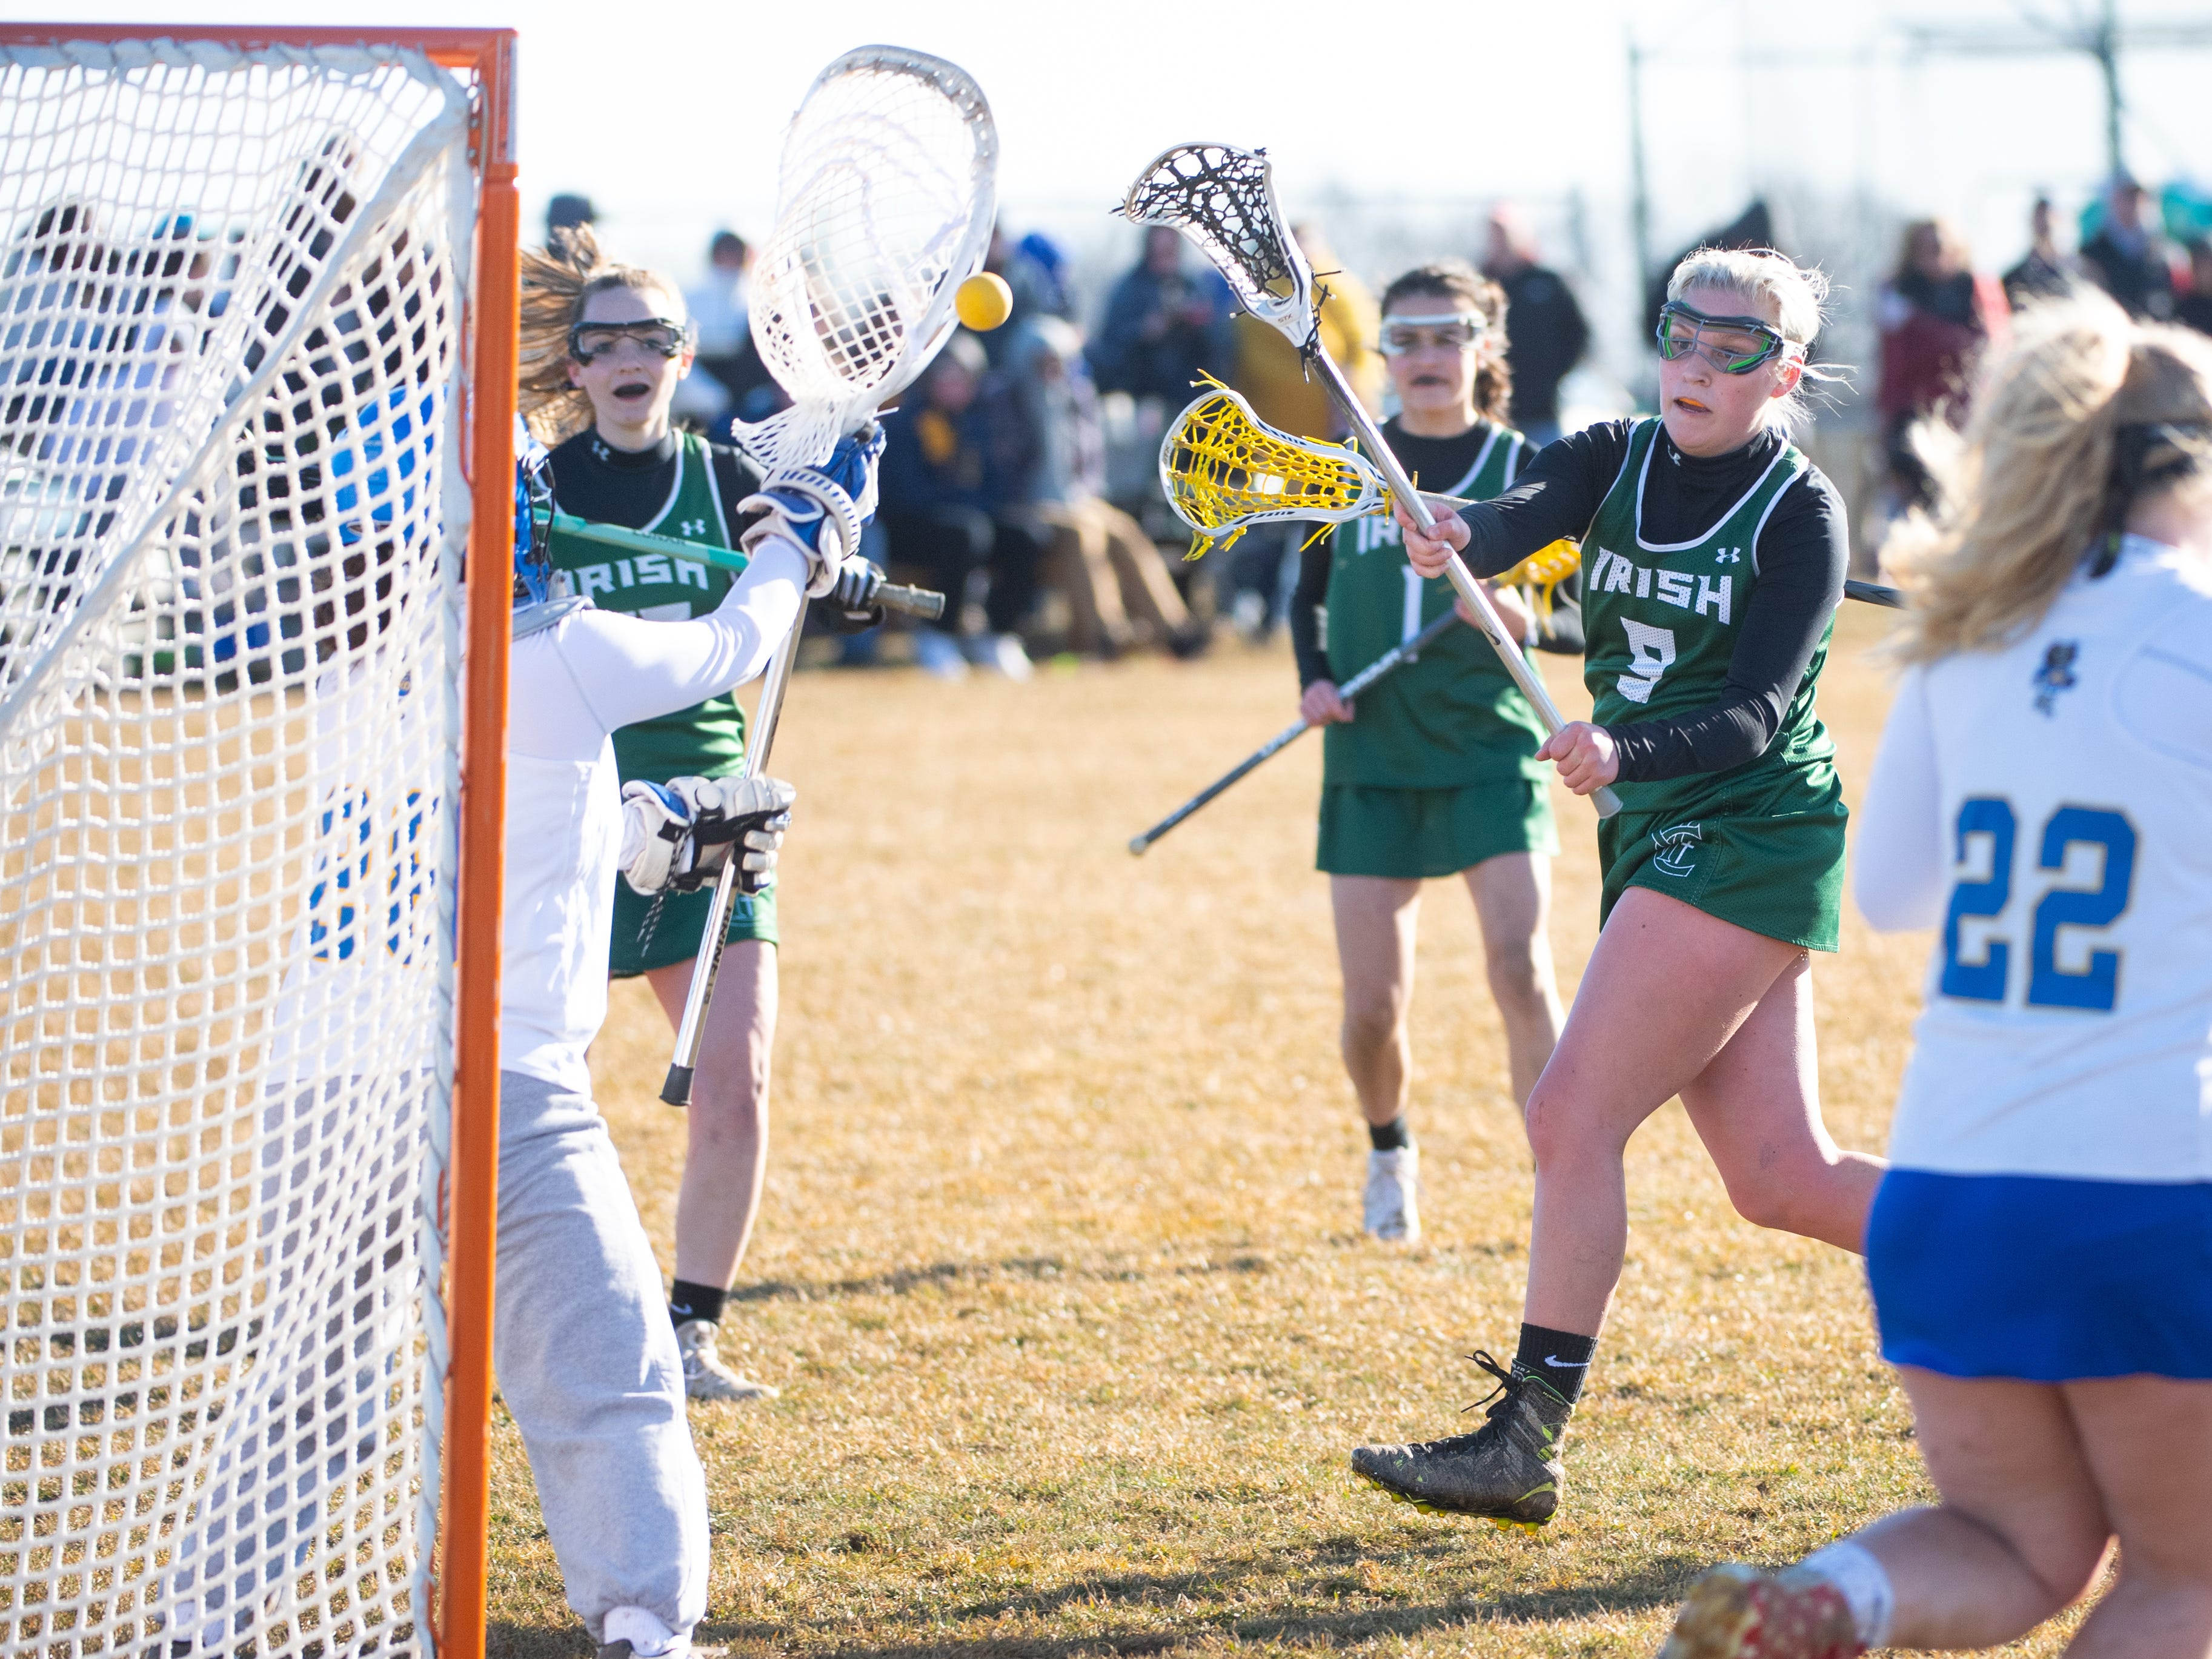 Kennedy Eckert (9) takes the shot during the girls' lacrosse game between Kennard-Dale and York Catholic, March 26, 2019 at Kennard-Dale High School. The Fighting Irish defeated the Rams 10 to 9.